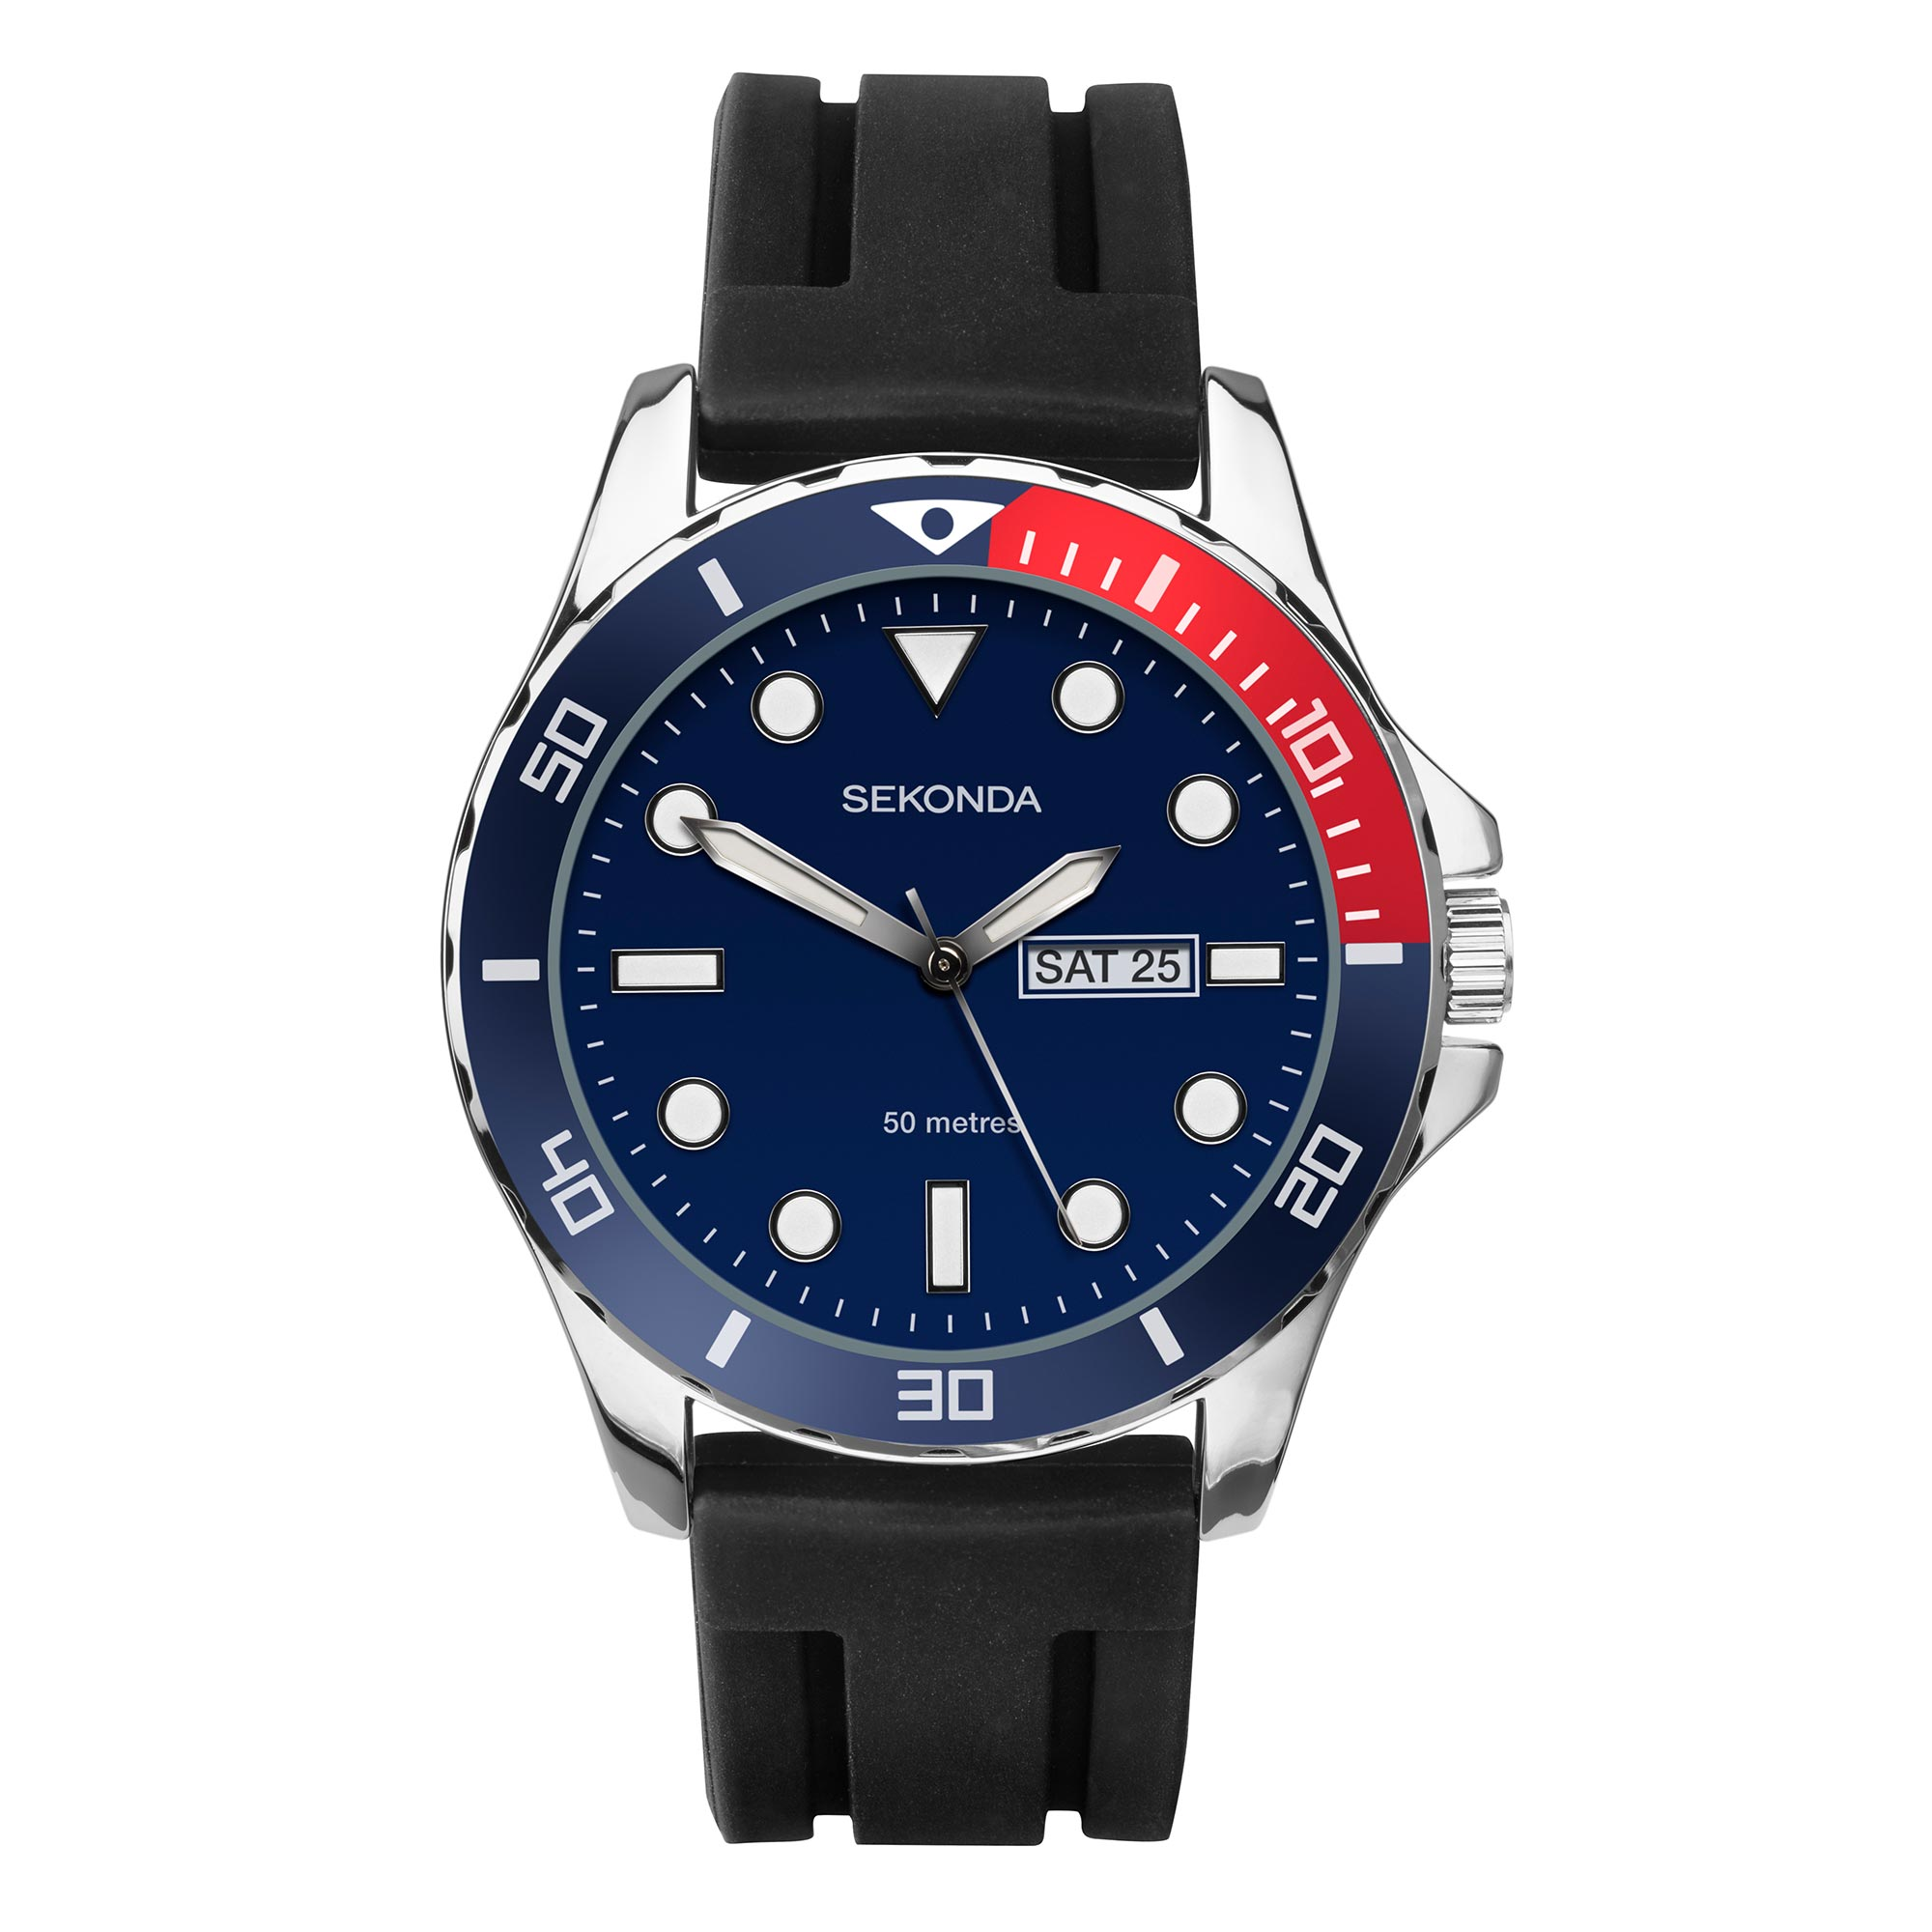 Sekonda gents watch. Silver colour case with blue and red bezel. Blue dial with batons. Day/date. Black rubber strap. Water resistant to 50 metres. 2 year guarantee.